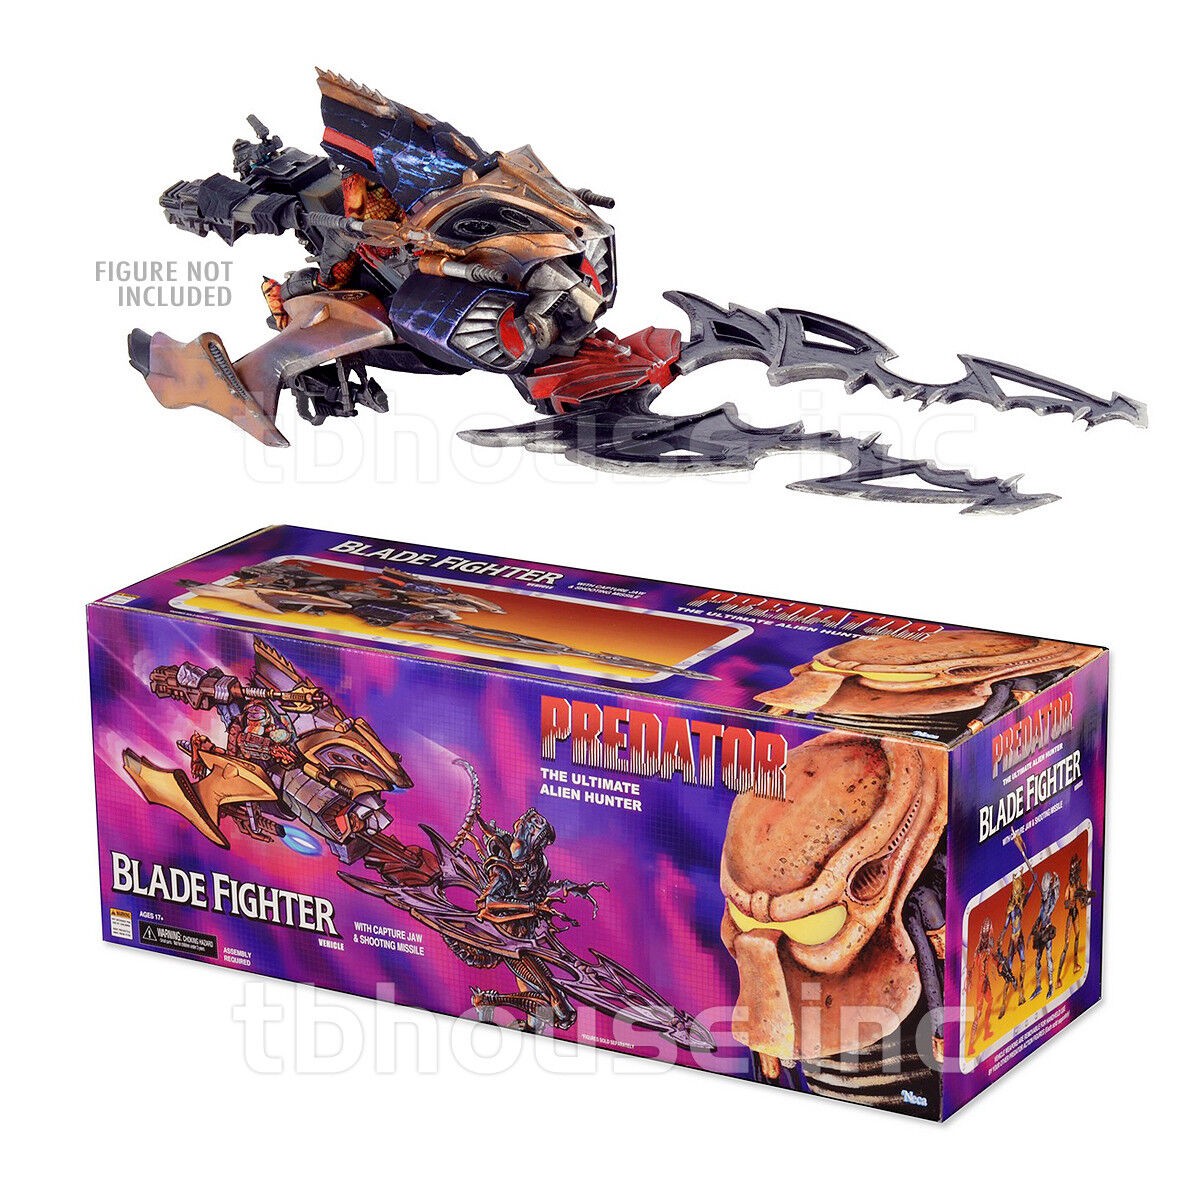 27  PREDATOR BLADE FIGHTER vehicle EXPANDED UNIVERSE UNIVERSE UNIVERSE kenner NECA SERIES 2014 46a2b3